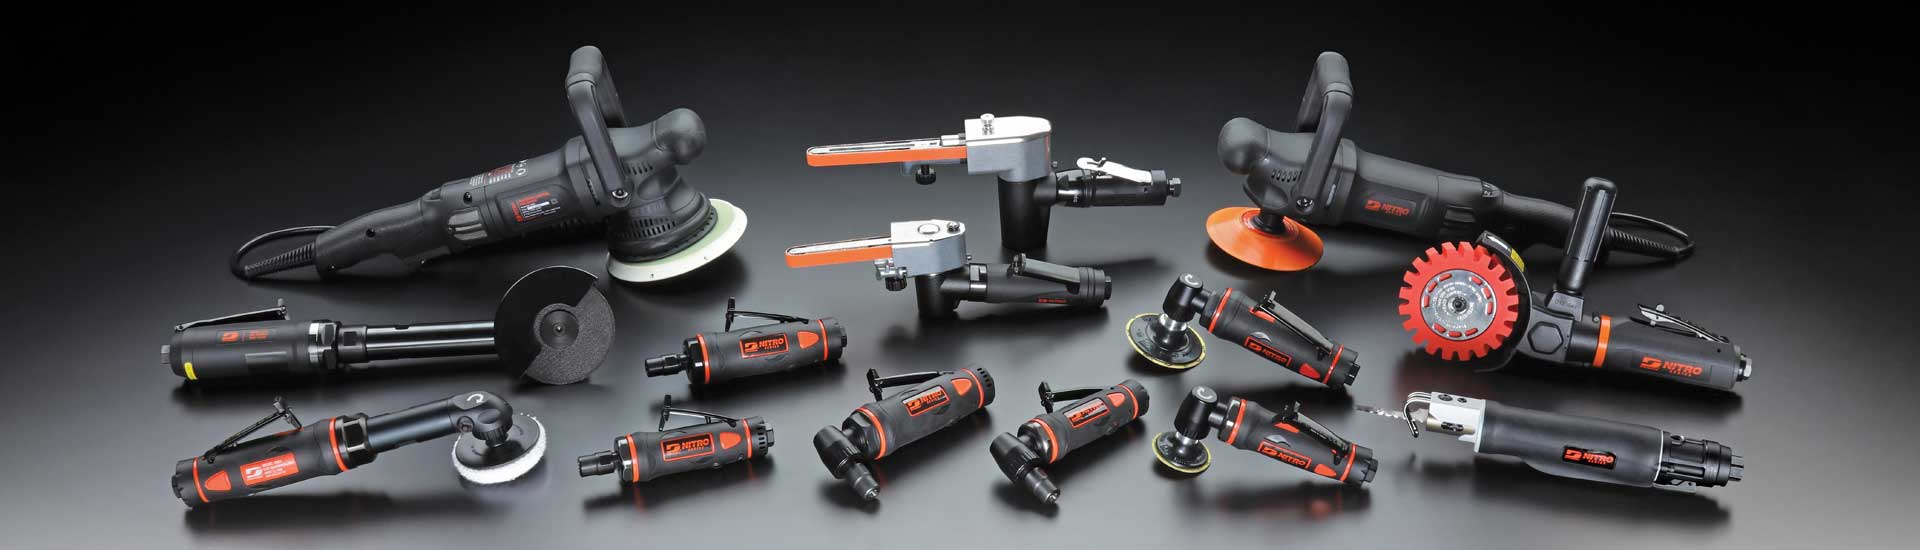 New Nitro-Series Tools From Dynabrade!